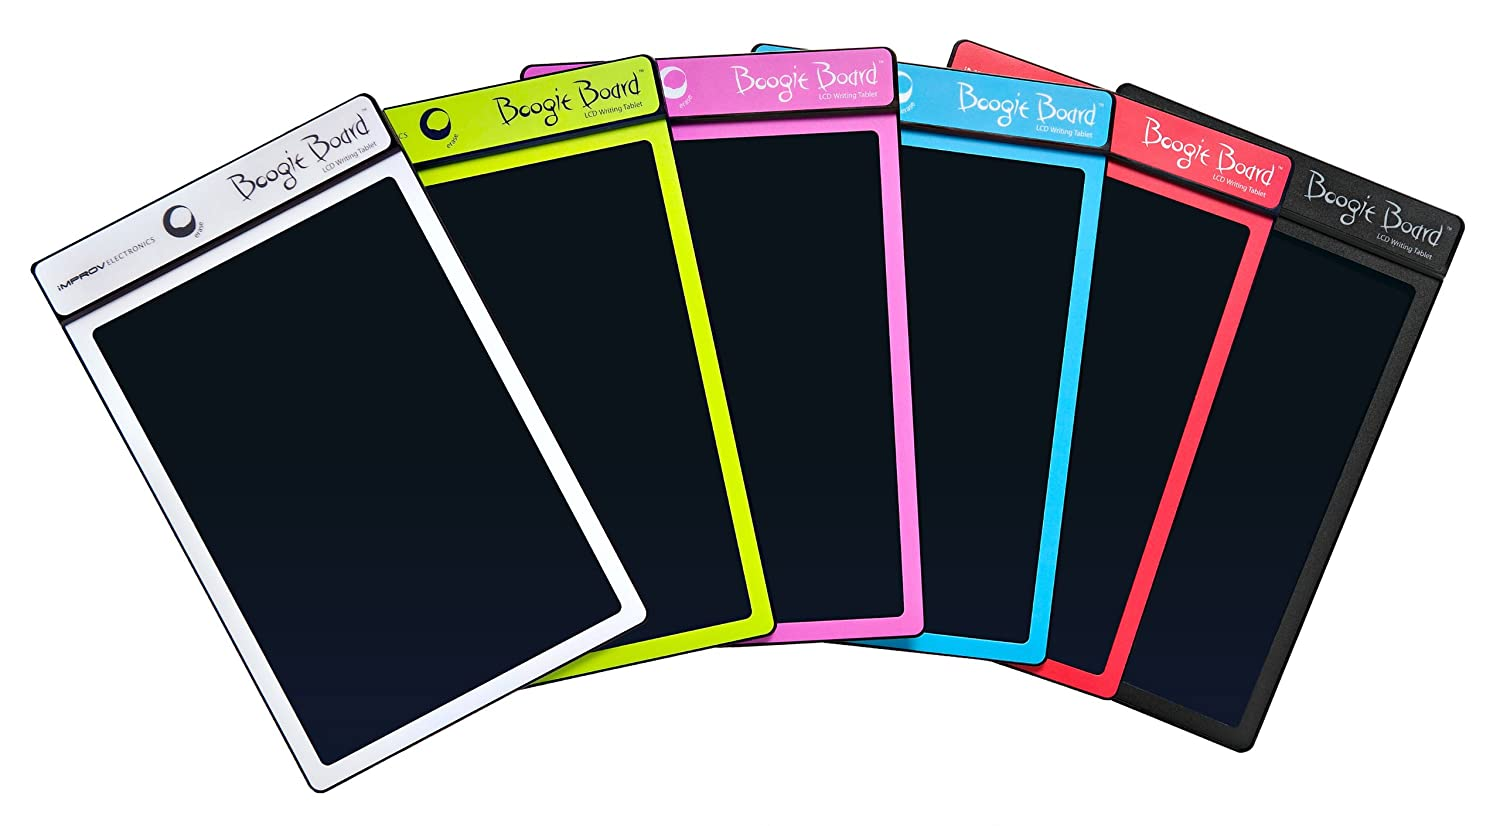 boogie board writing tablet walmart Features the boogie board rip lcd writing tablet combines an exceptional paper-like writing experience with the ability to save written or drawn images as files.